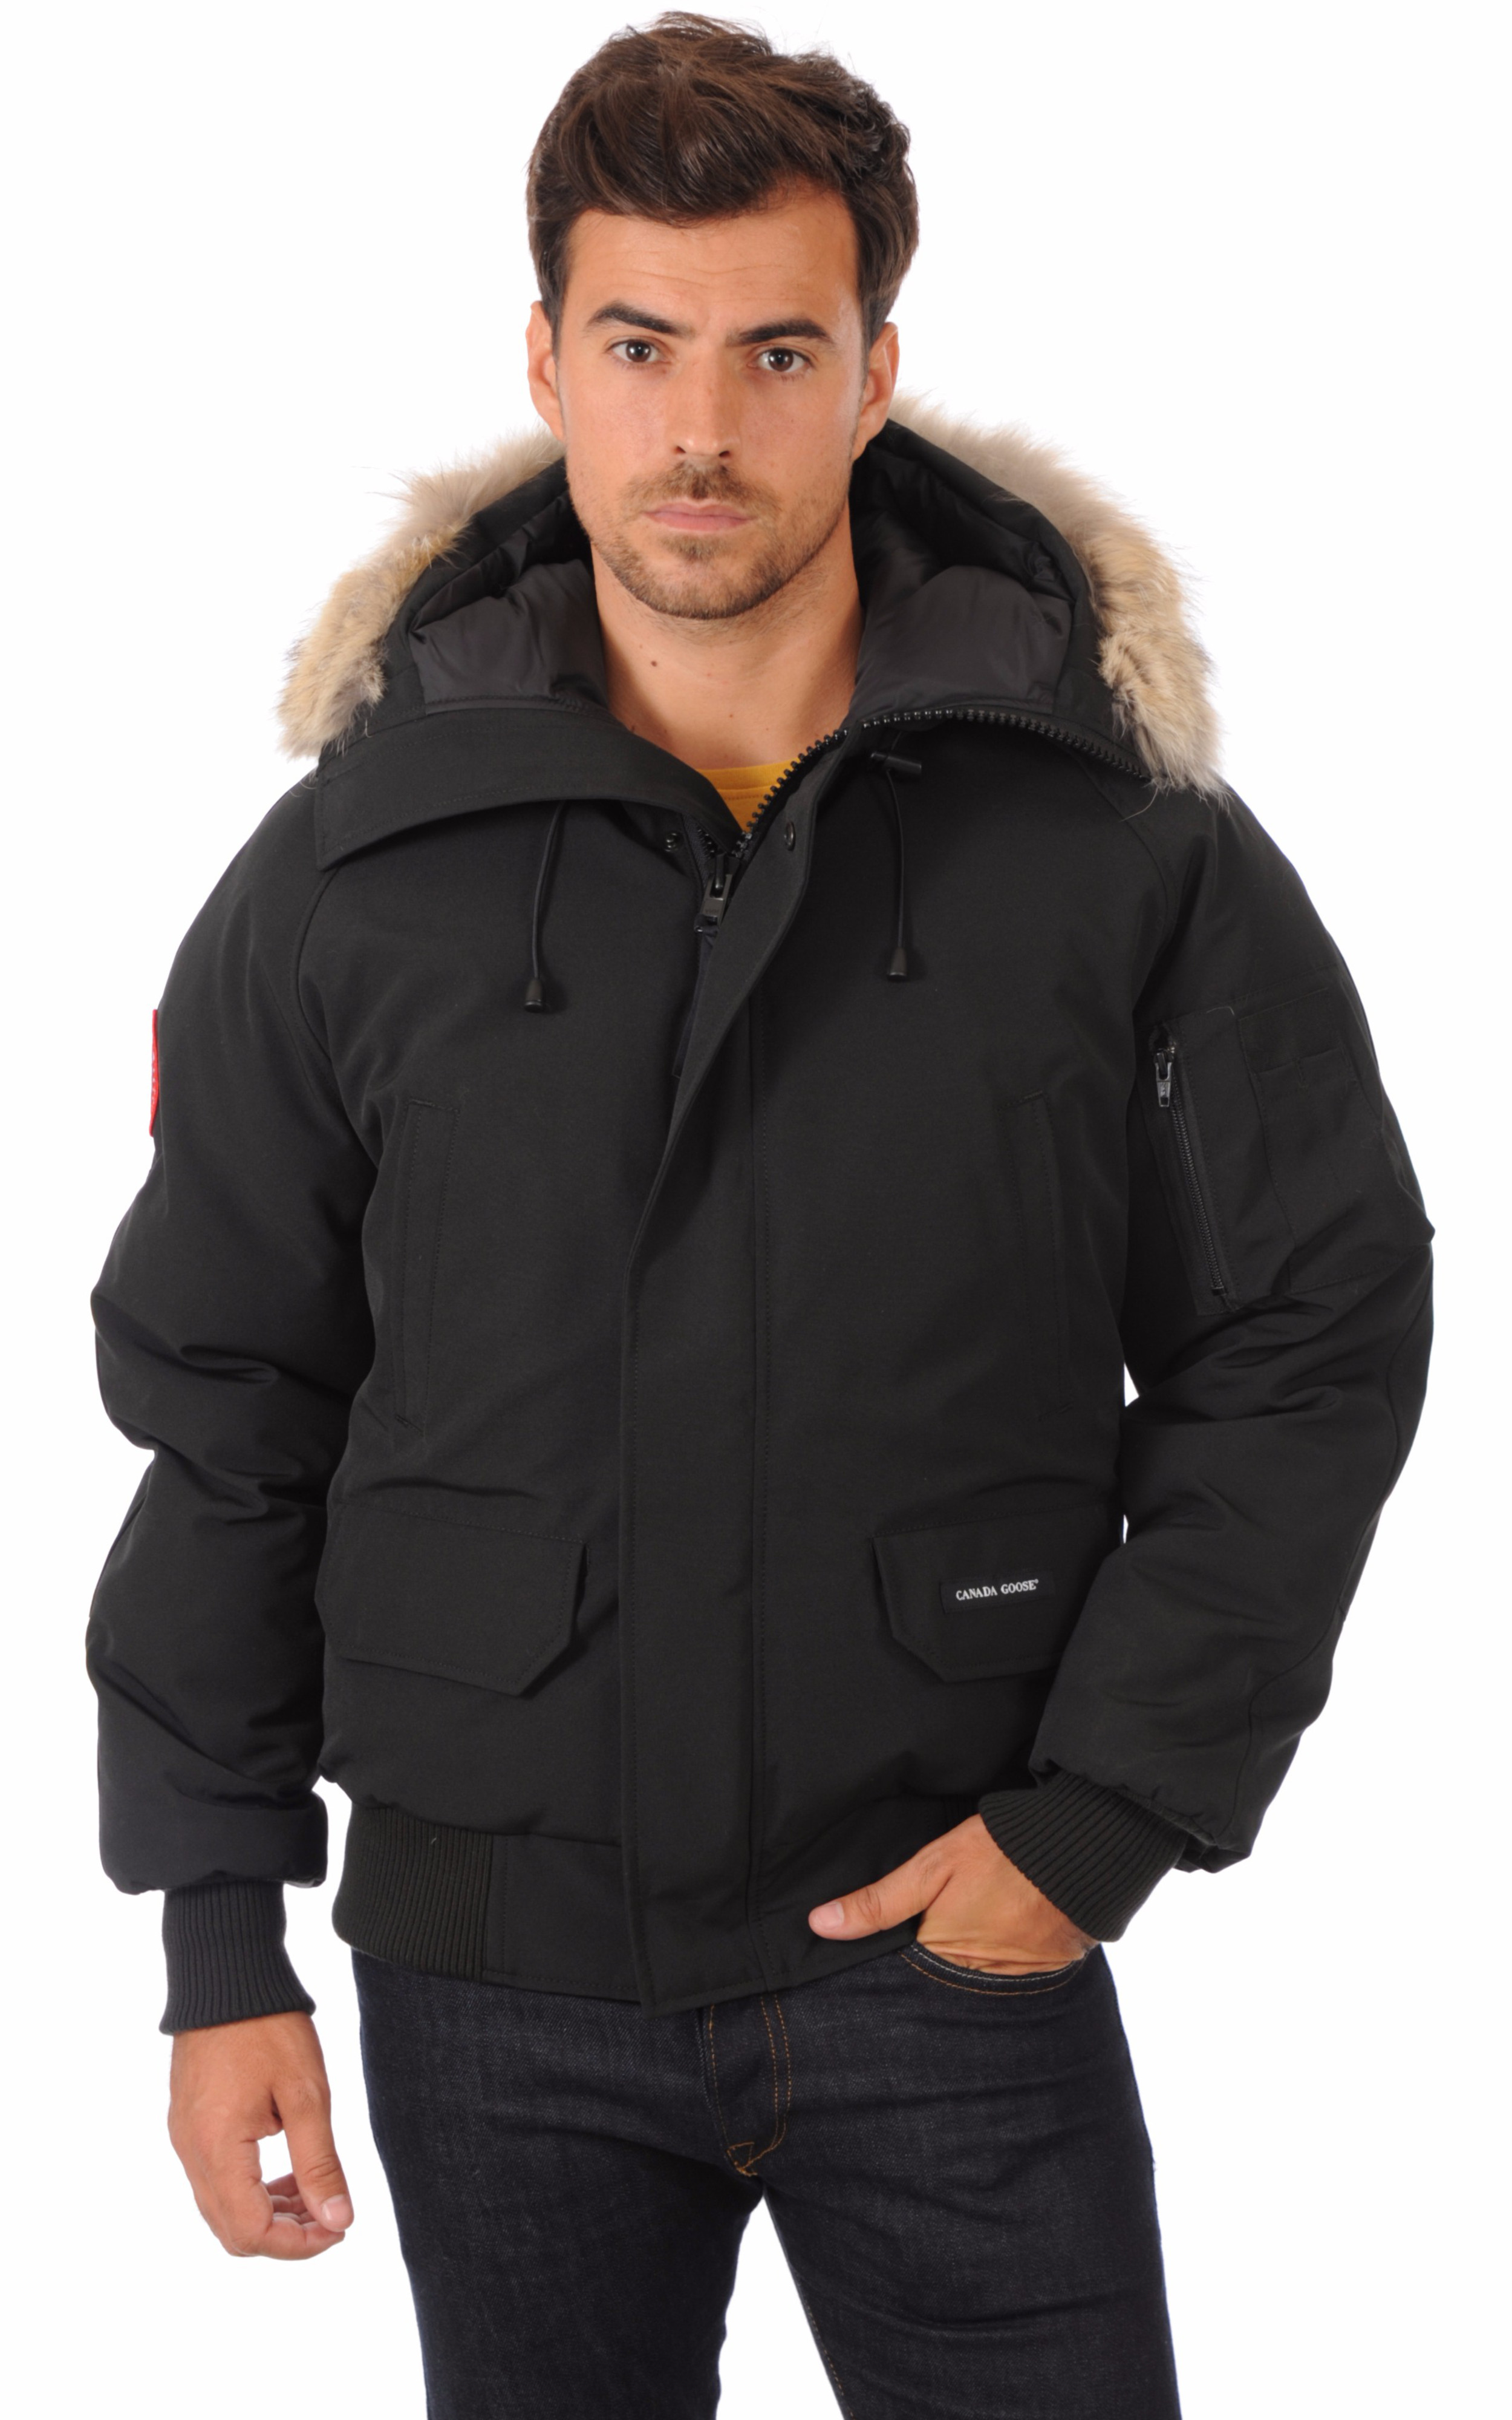 blouson chilliwack noir homme canada goose la canadienne doudoune parka textile noir. Black Bedroom Furniture Sets. Home Design Ideas